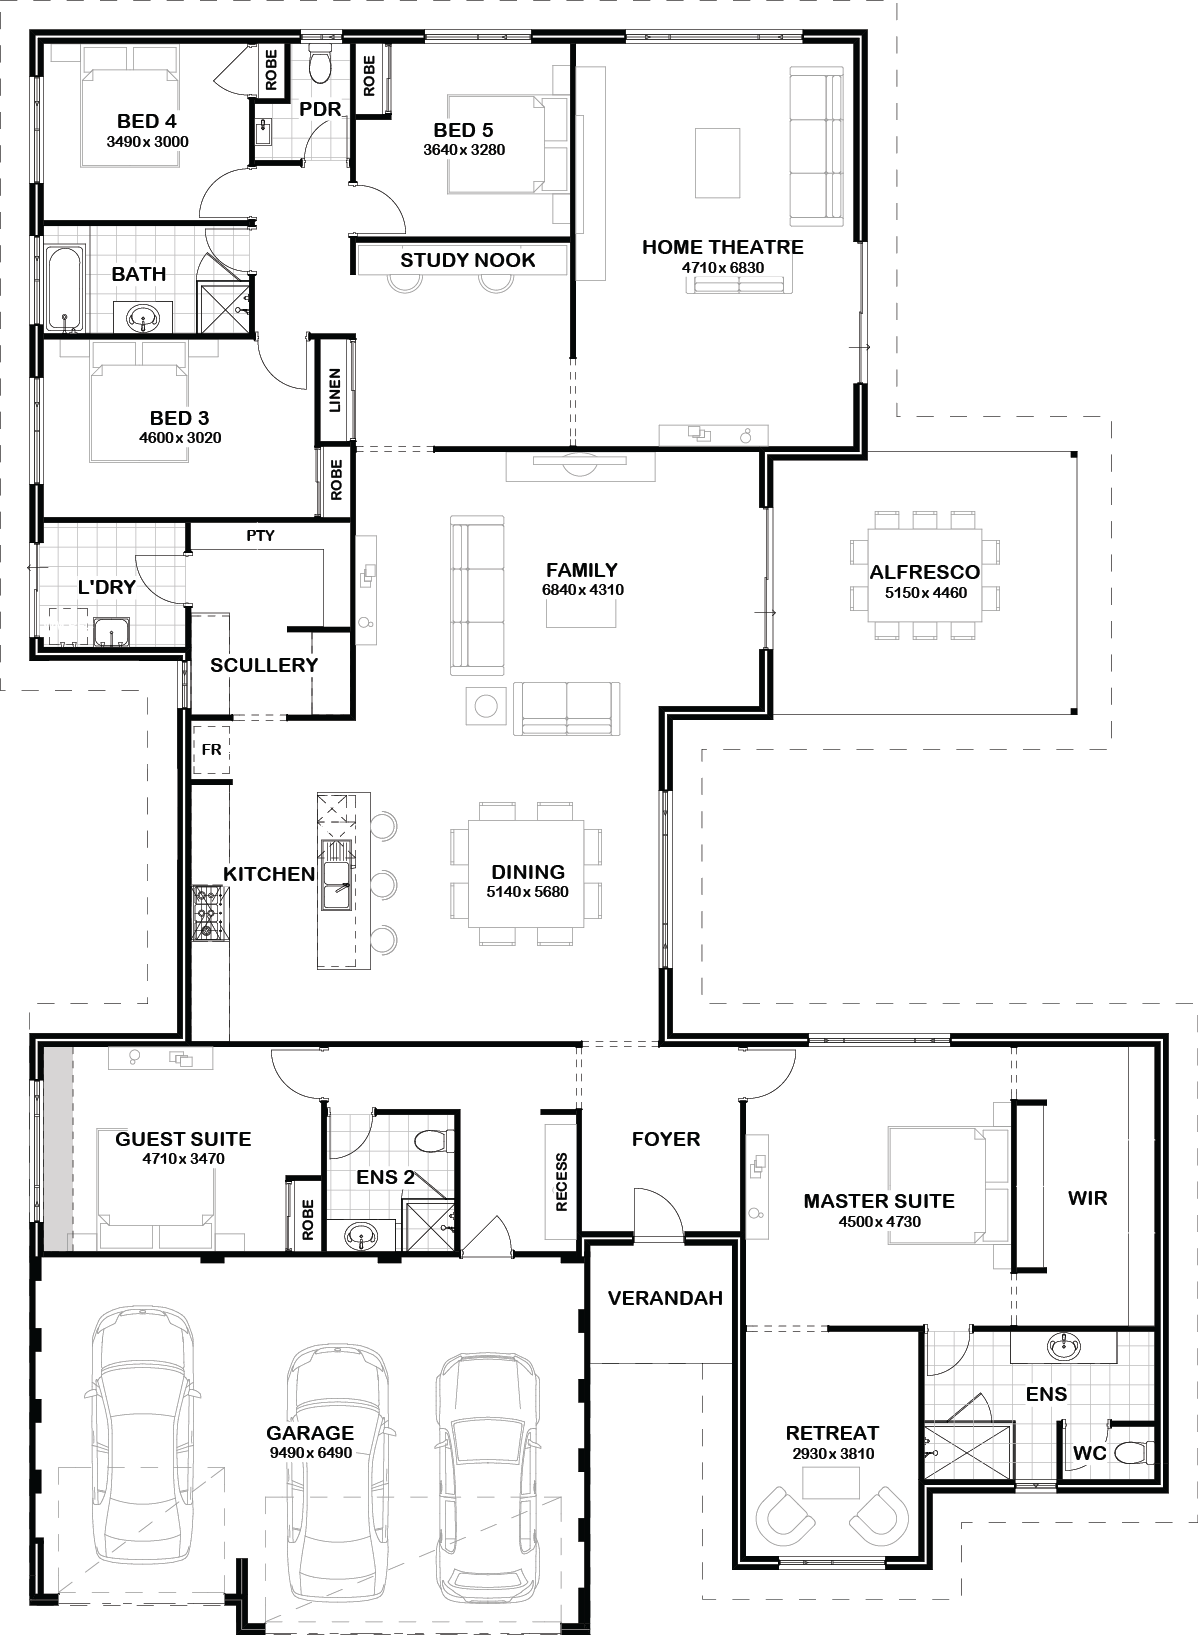 Floorplan House Floor Plans House Flooring Bedroom House Plans